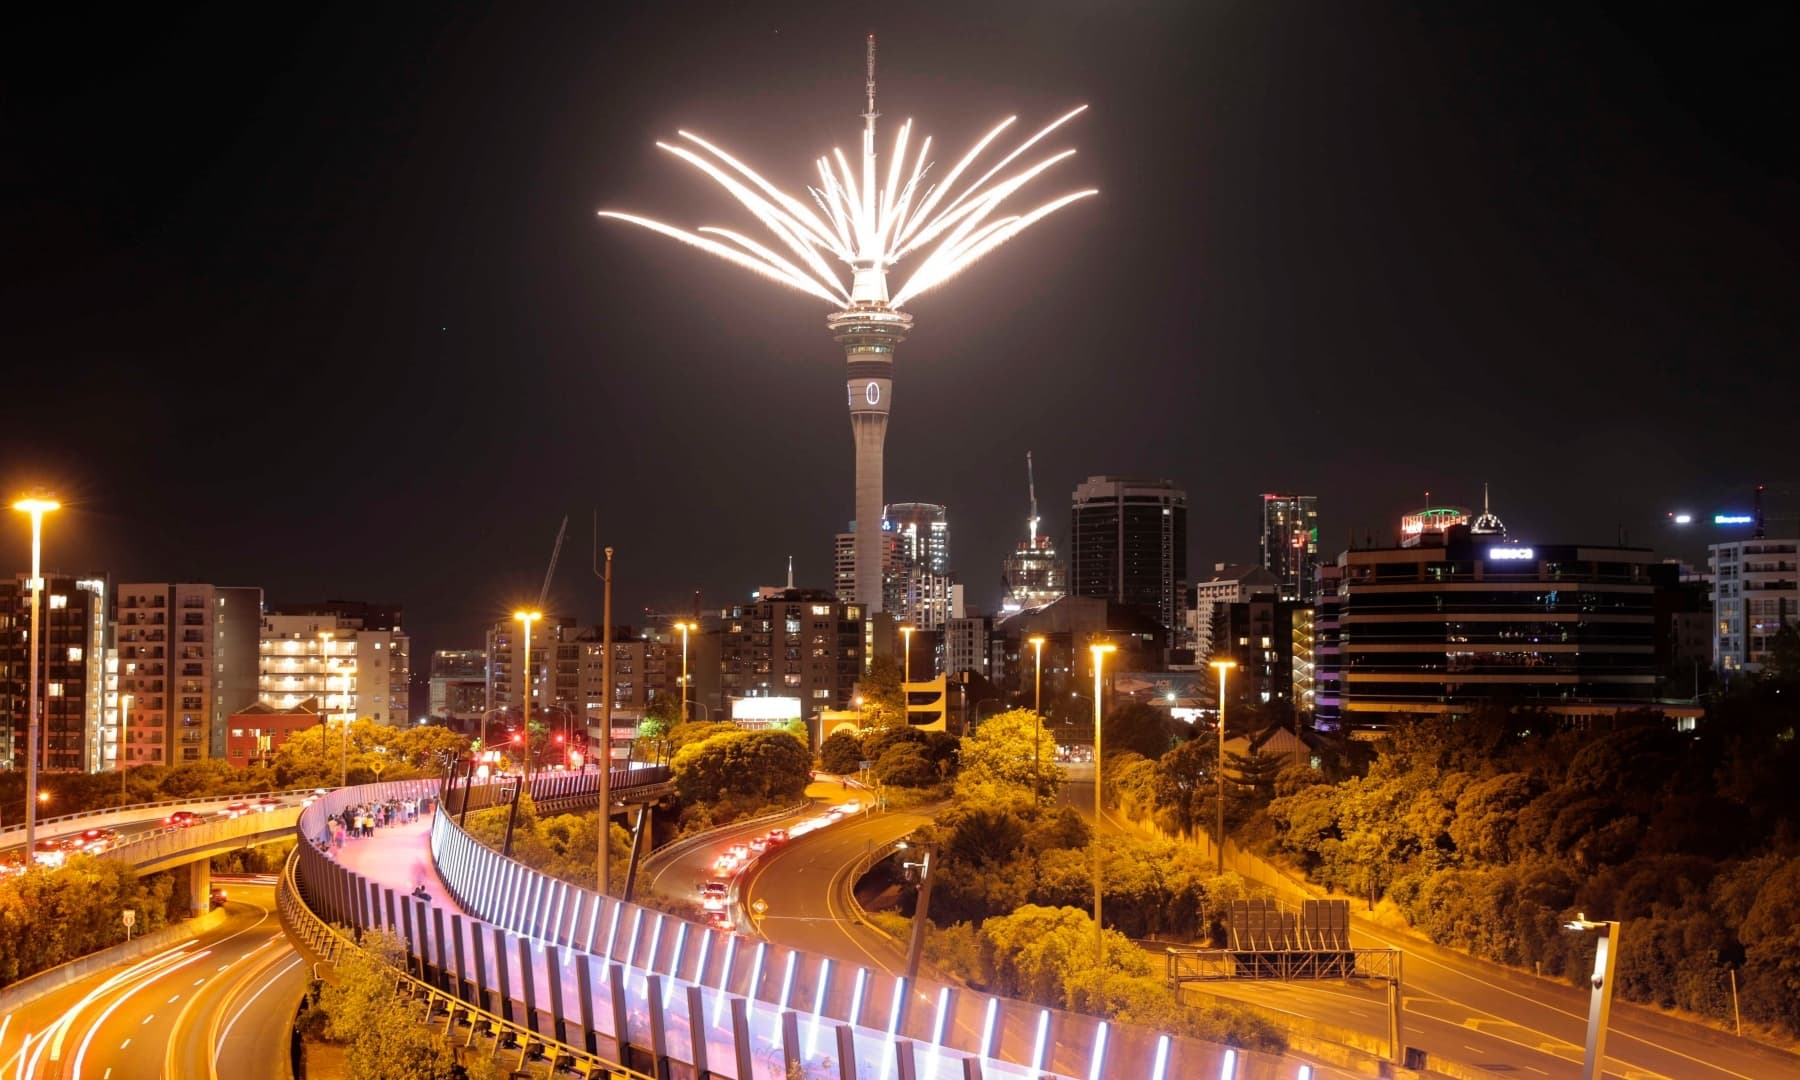 Fireworks are launched from the Sky Tower to mark the changing of the year on New Year's Eve in Auckland, New Zealand, Thursday. — AP